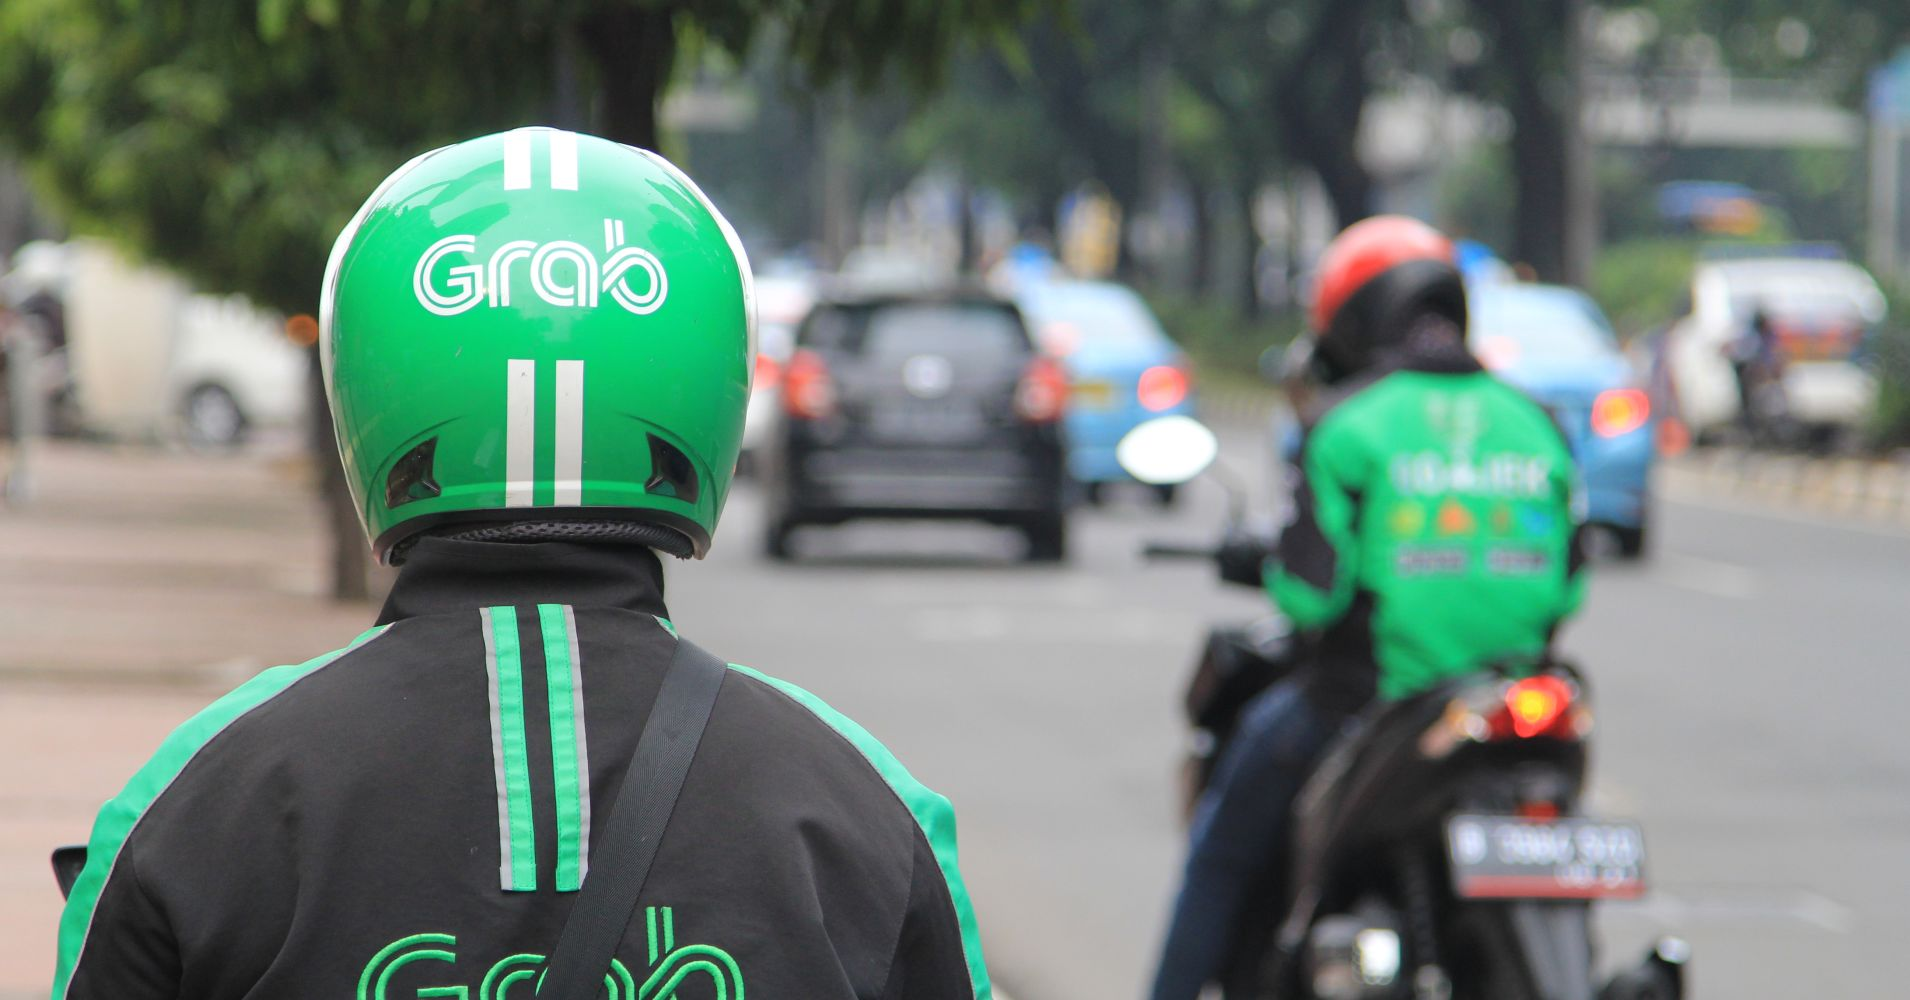 Microsoft is investing in ride-hailing firm Grab